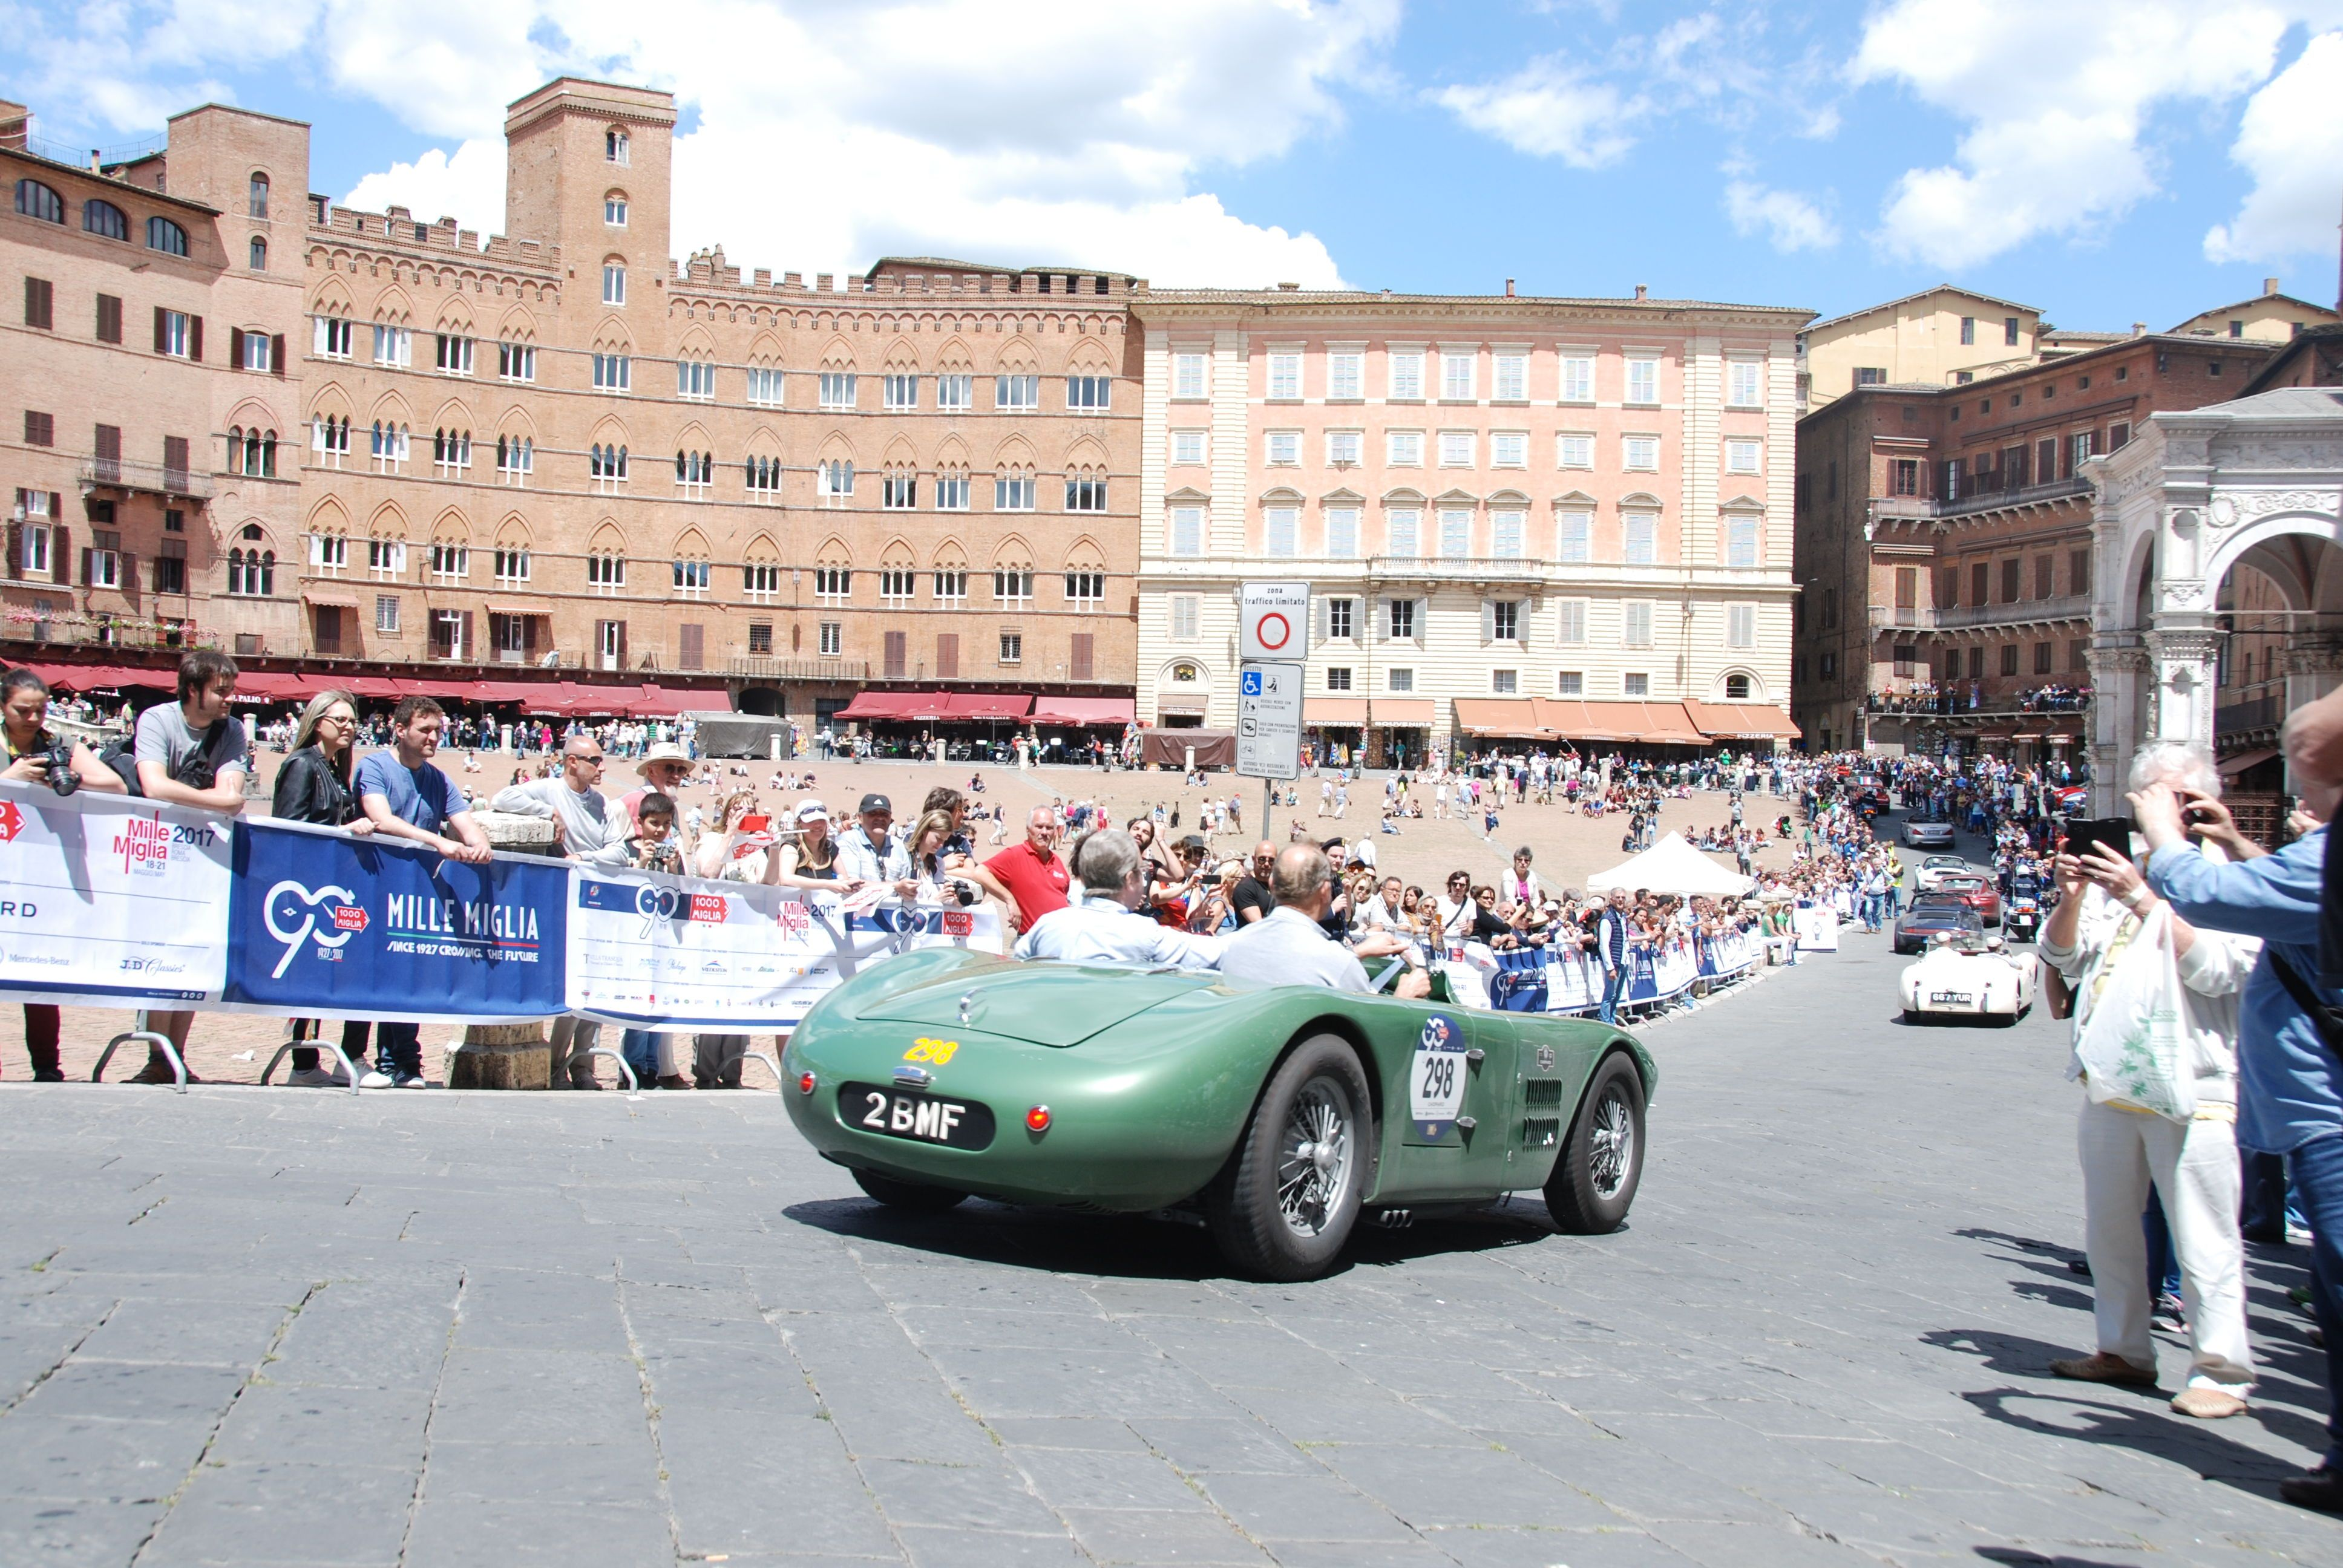 For more information about the great Mille Miglia car race, click ...